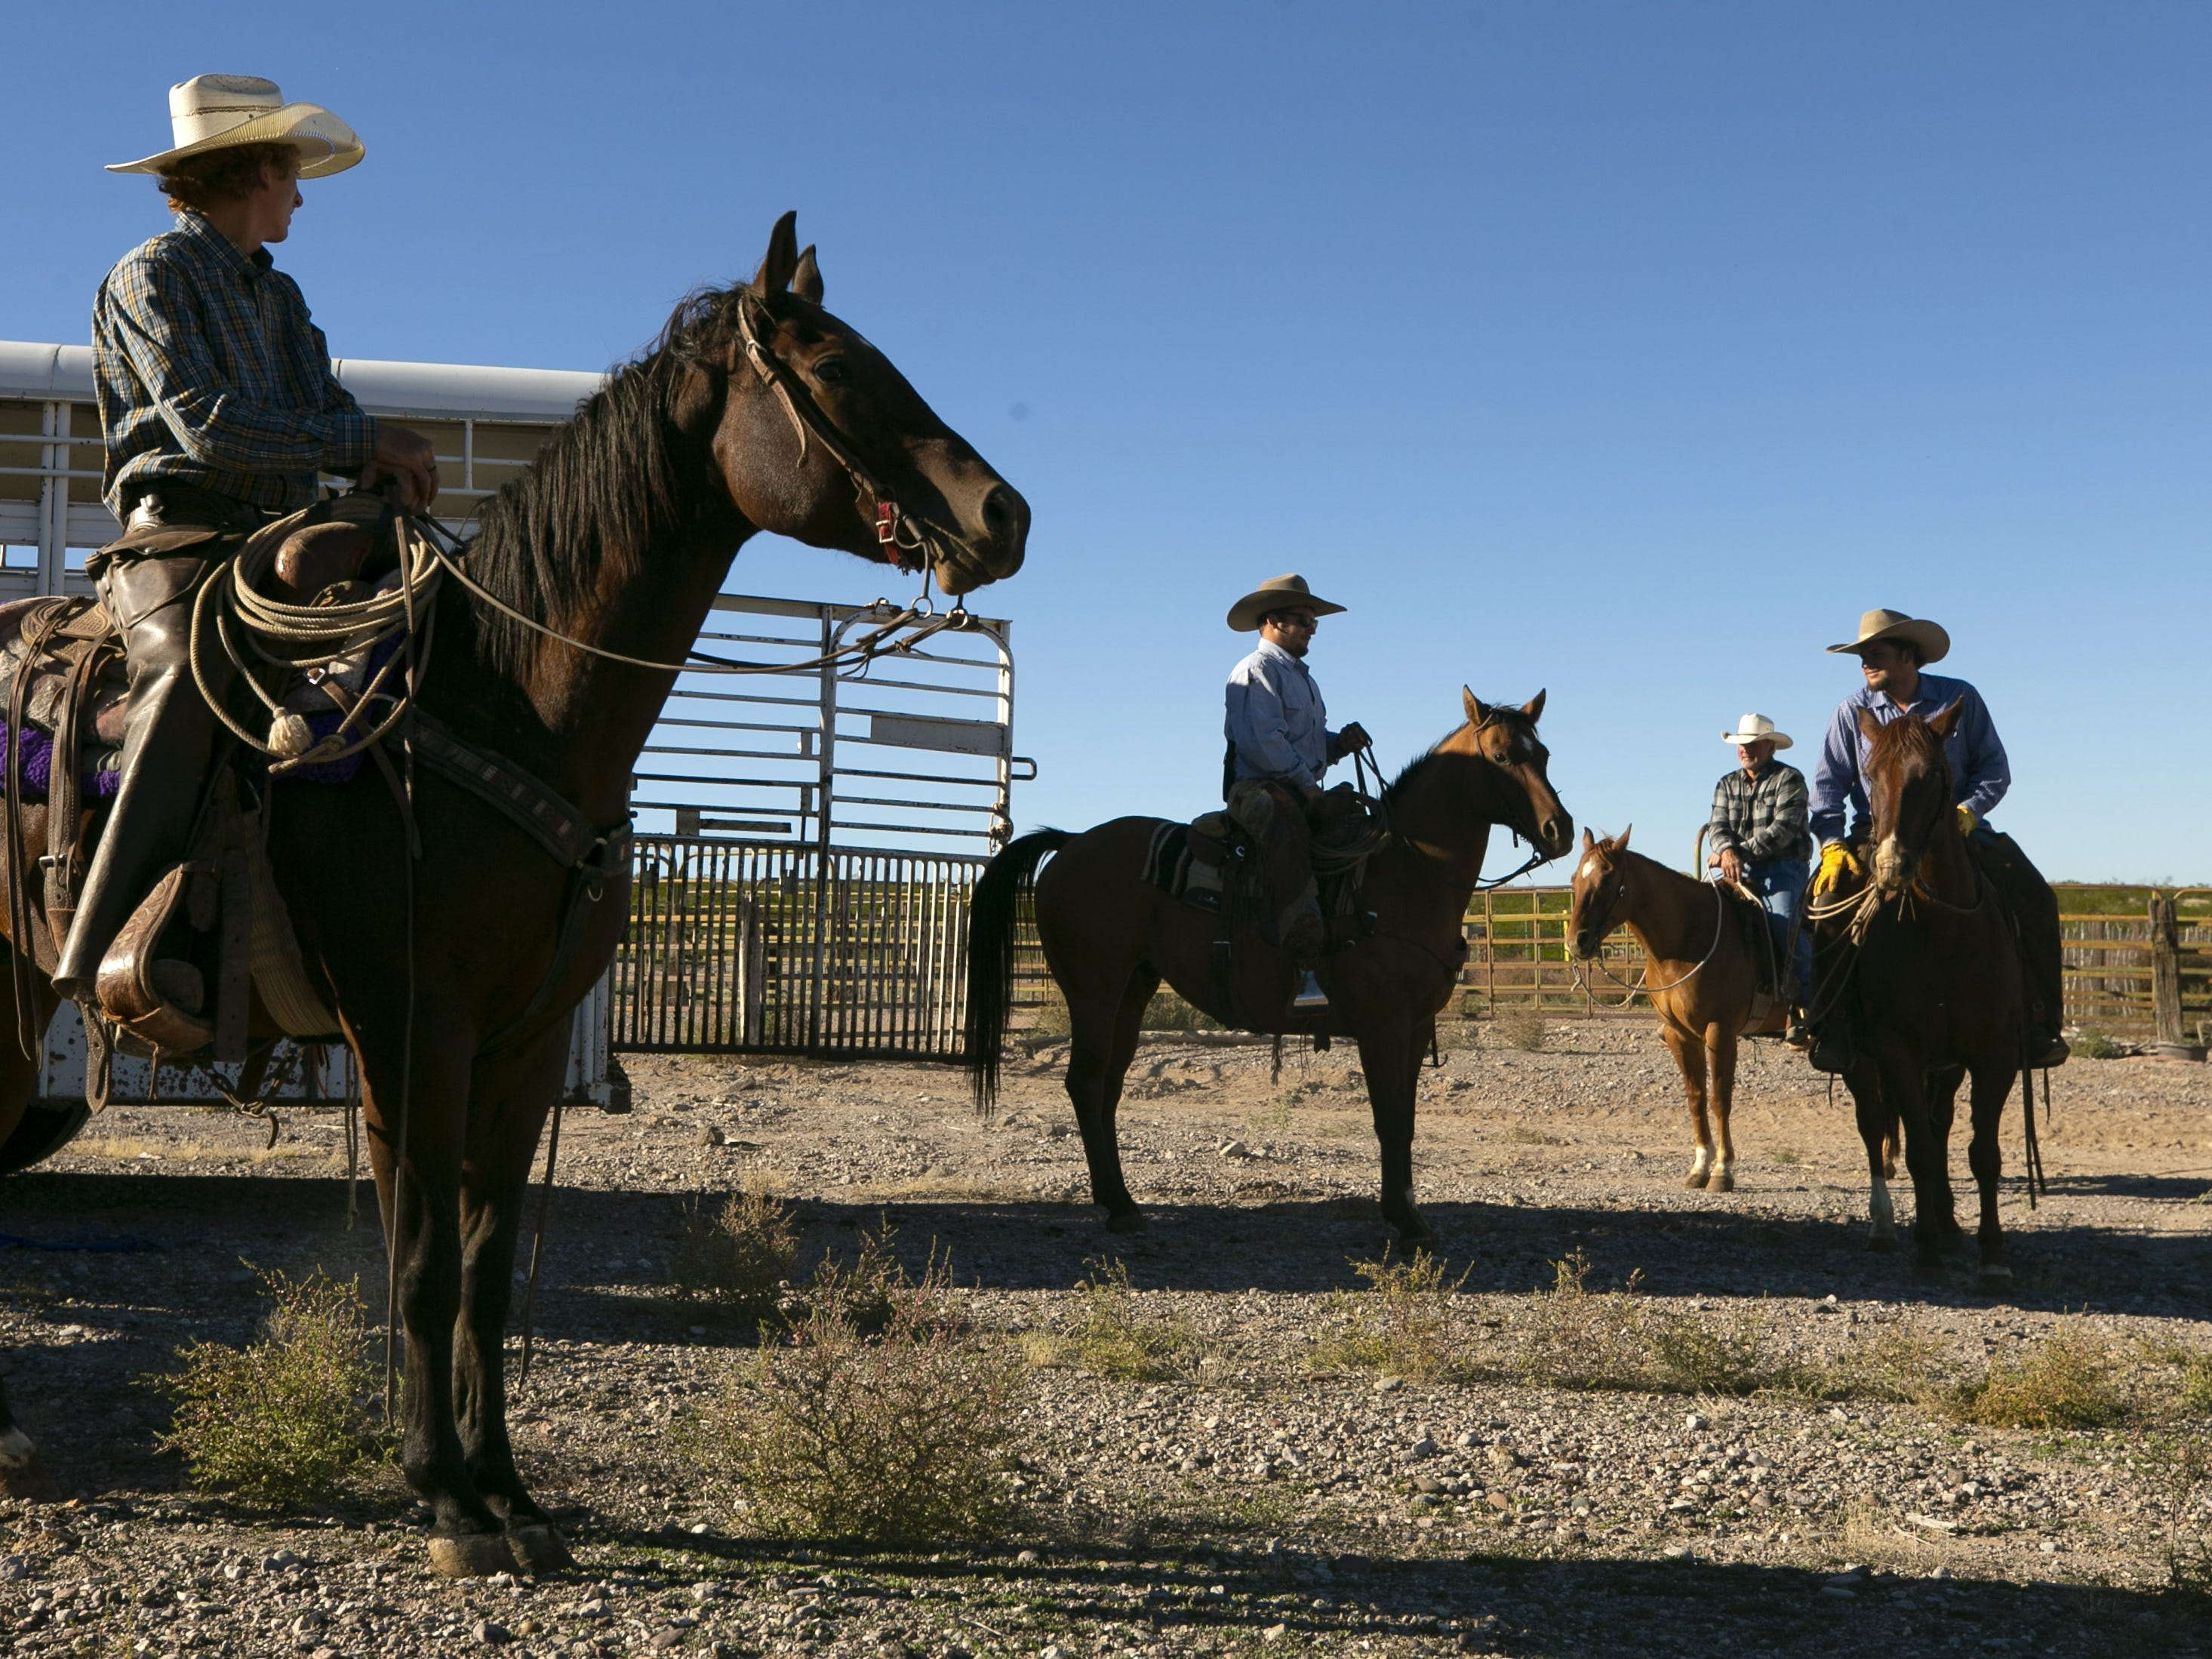 Payson Harsh, 18, (left) and other cowboys before a roundup of cattle at the Lazy B Ranch outside of Duncan, Ariz., on Nov. 2, 2018. Former Supreme Court Justice Sandra Day O'Connor grew up on the ranch.